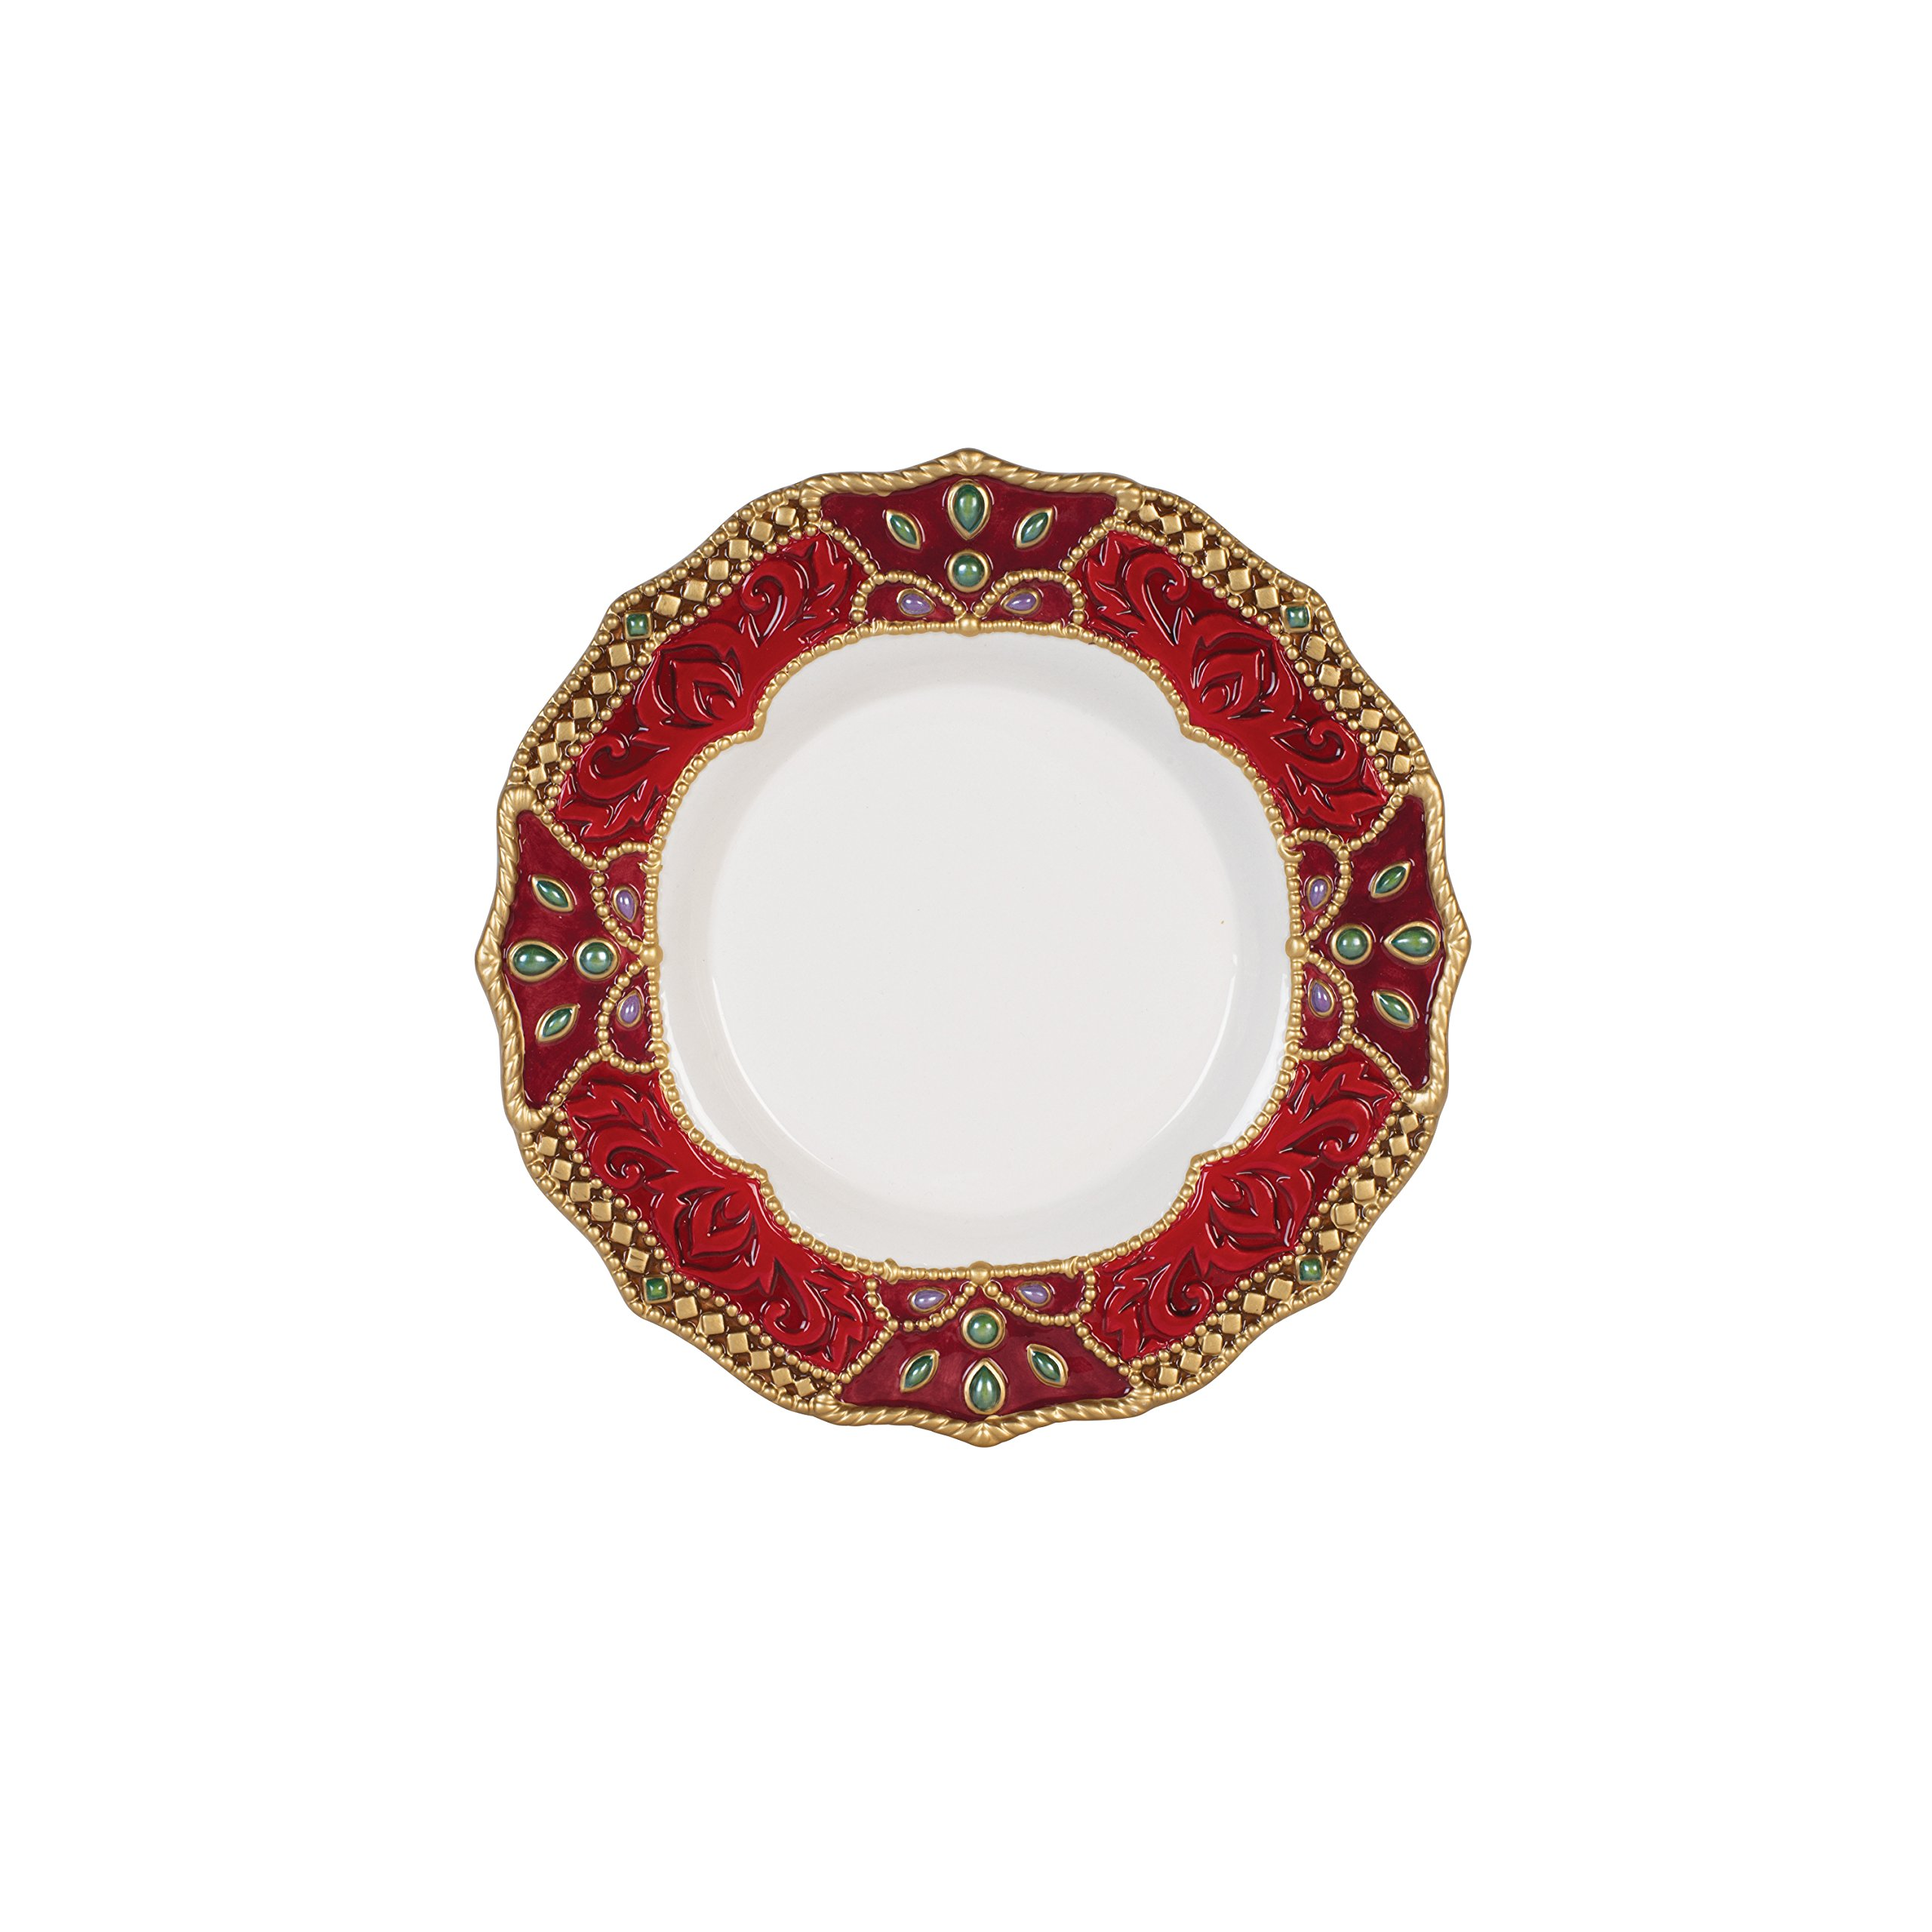 Fitz and Floyd 49-674 Renaissance Holiday Salad Plate, Red White